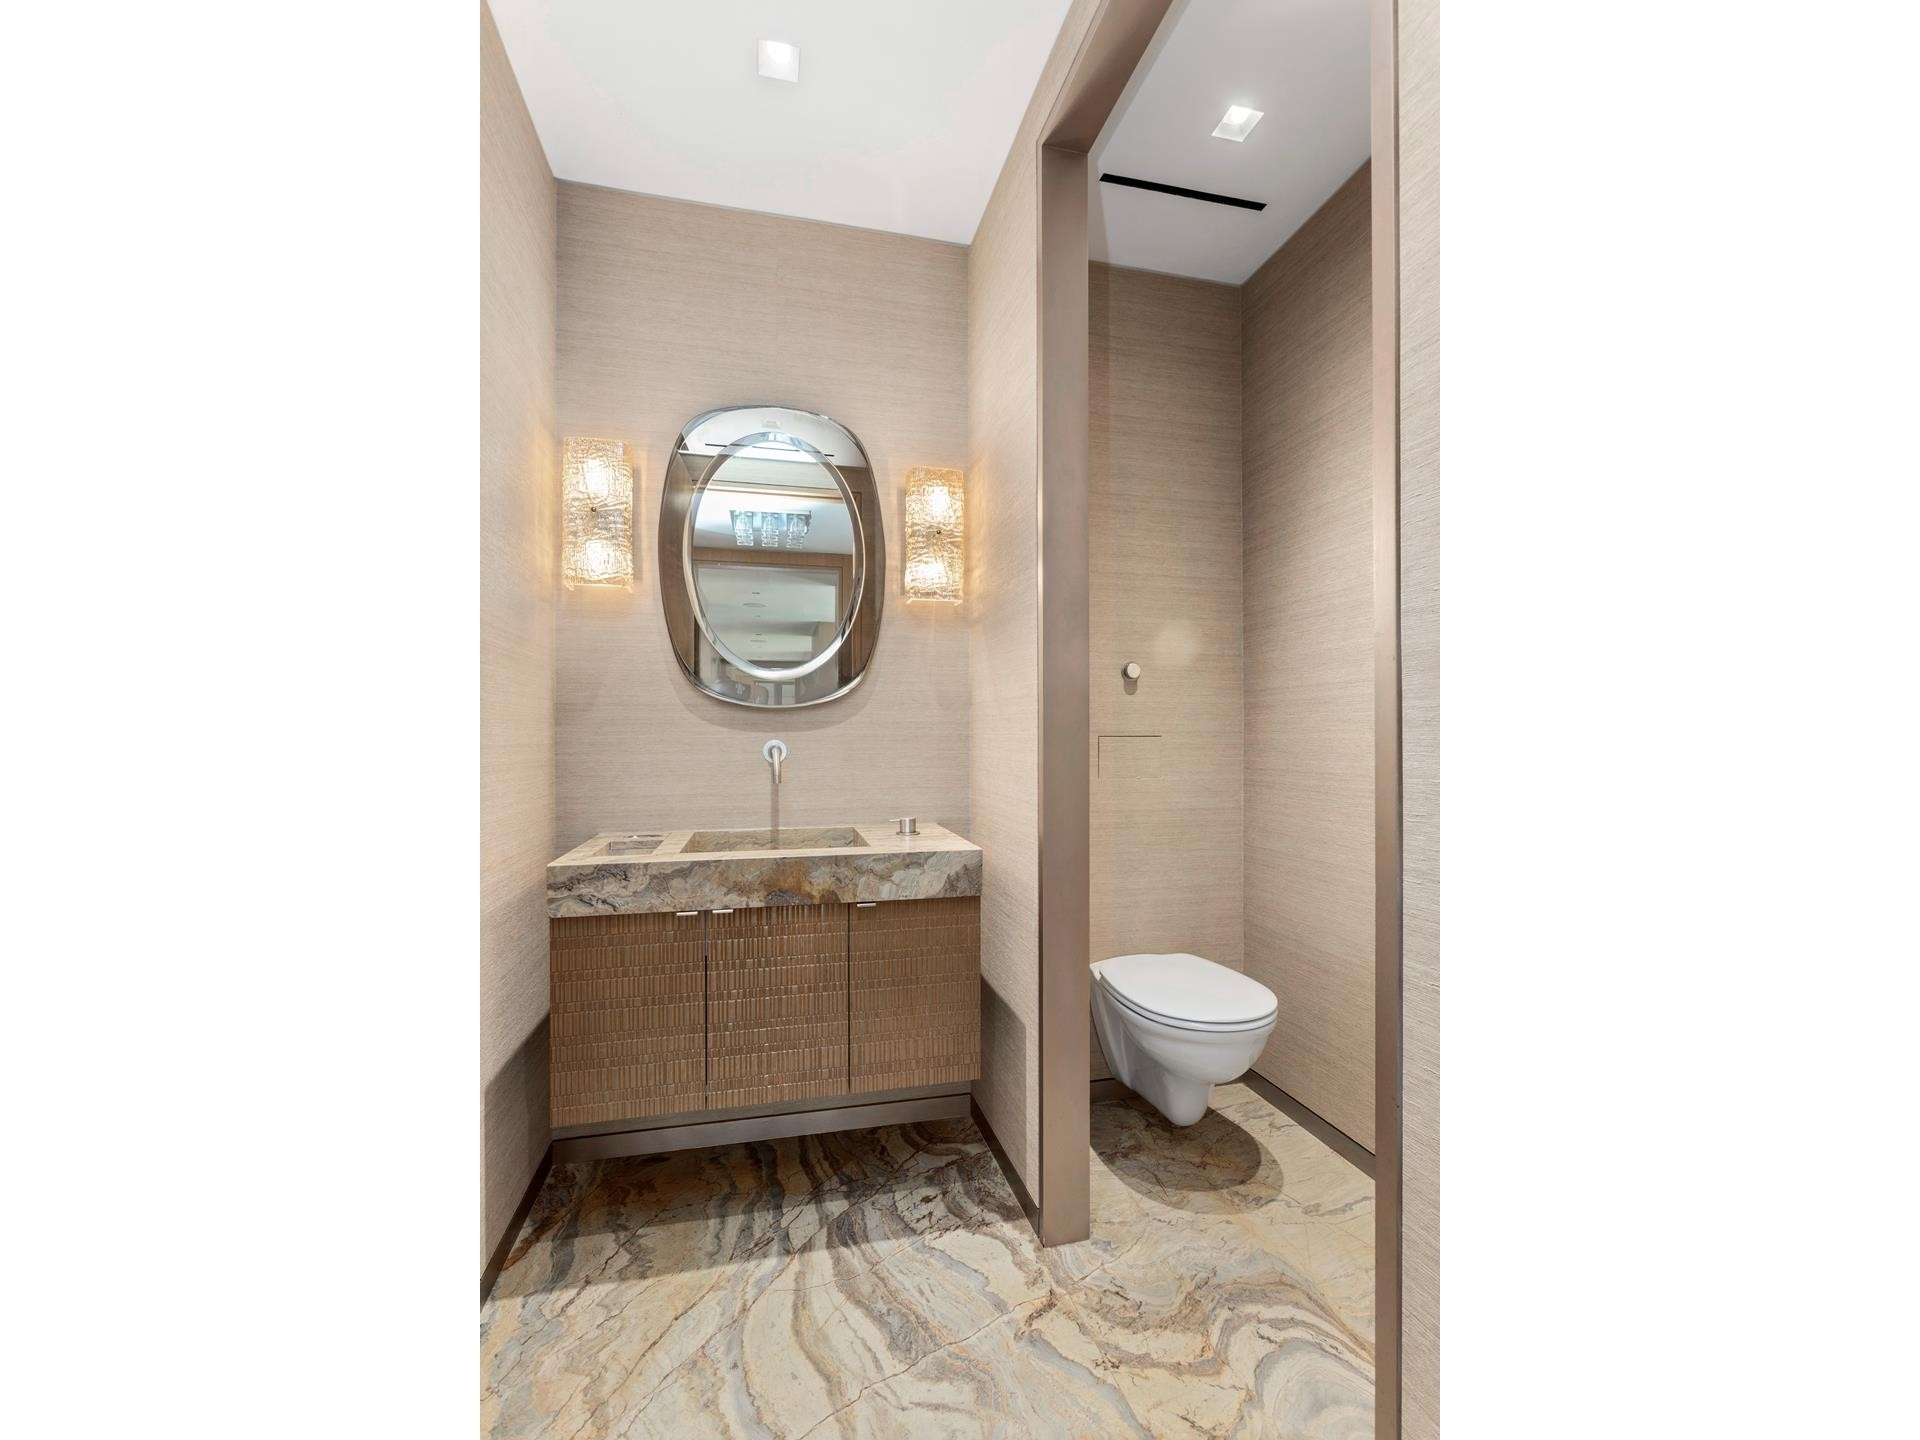 15. Condominiums for Sale at 279 CPW, 279 Central Park West, PHBA Upper West Side, New York, NY 10024